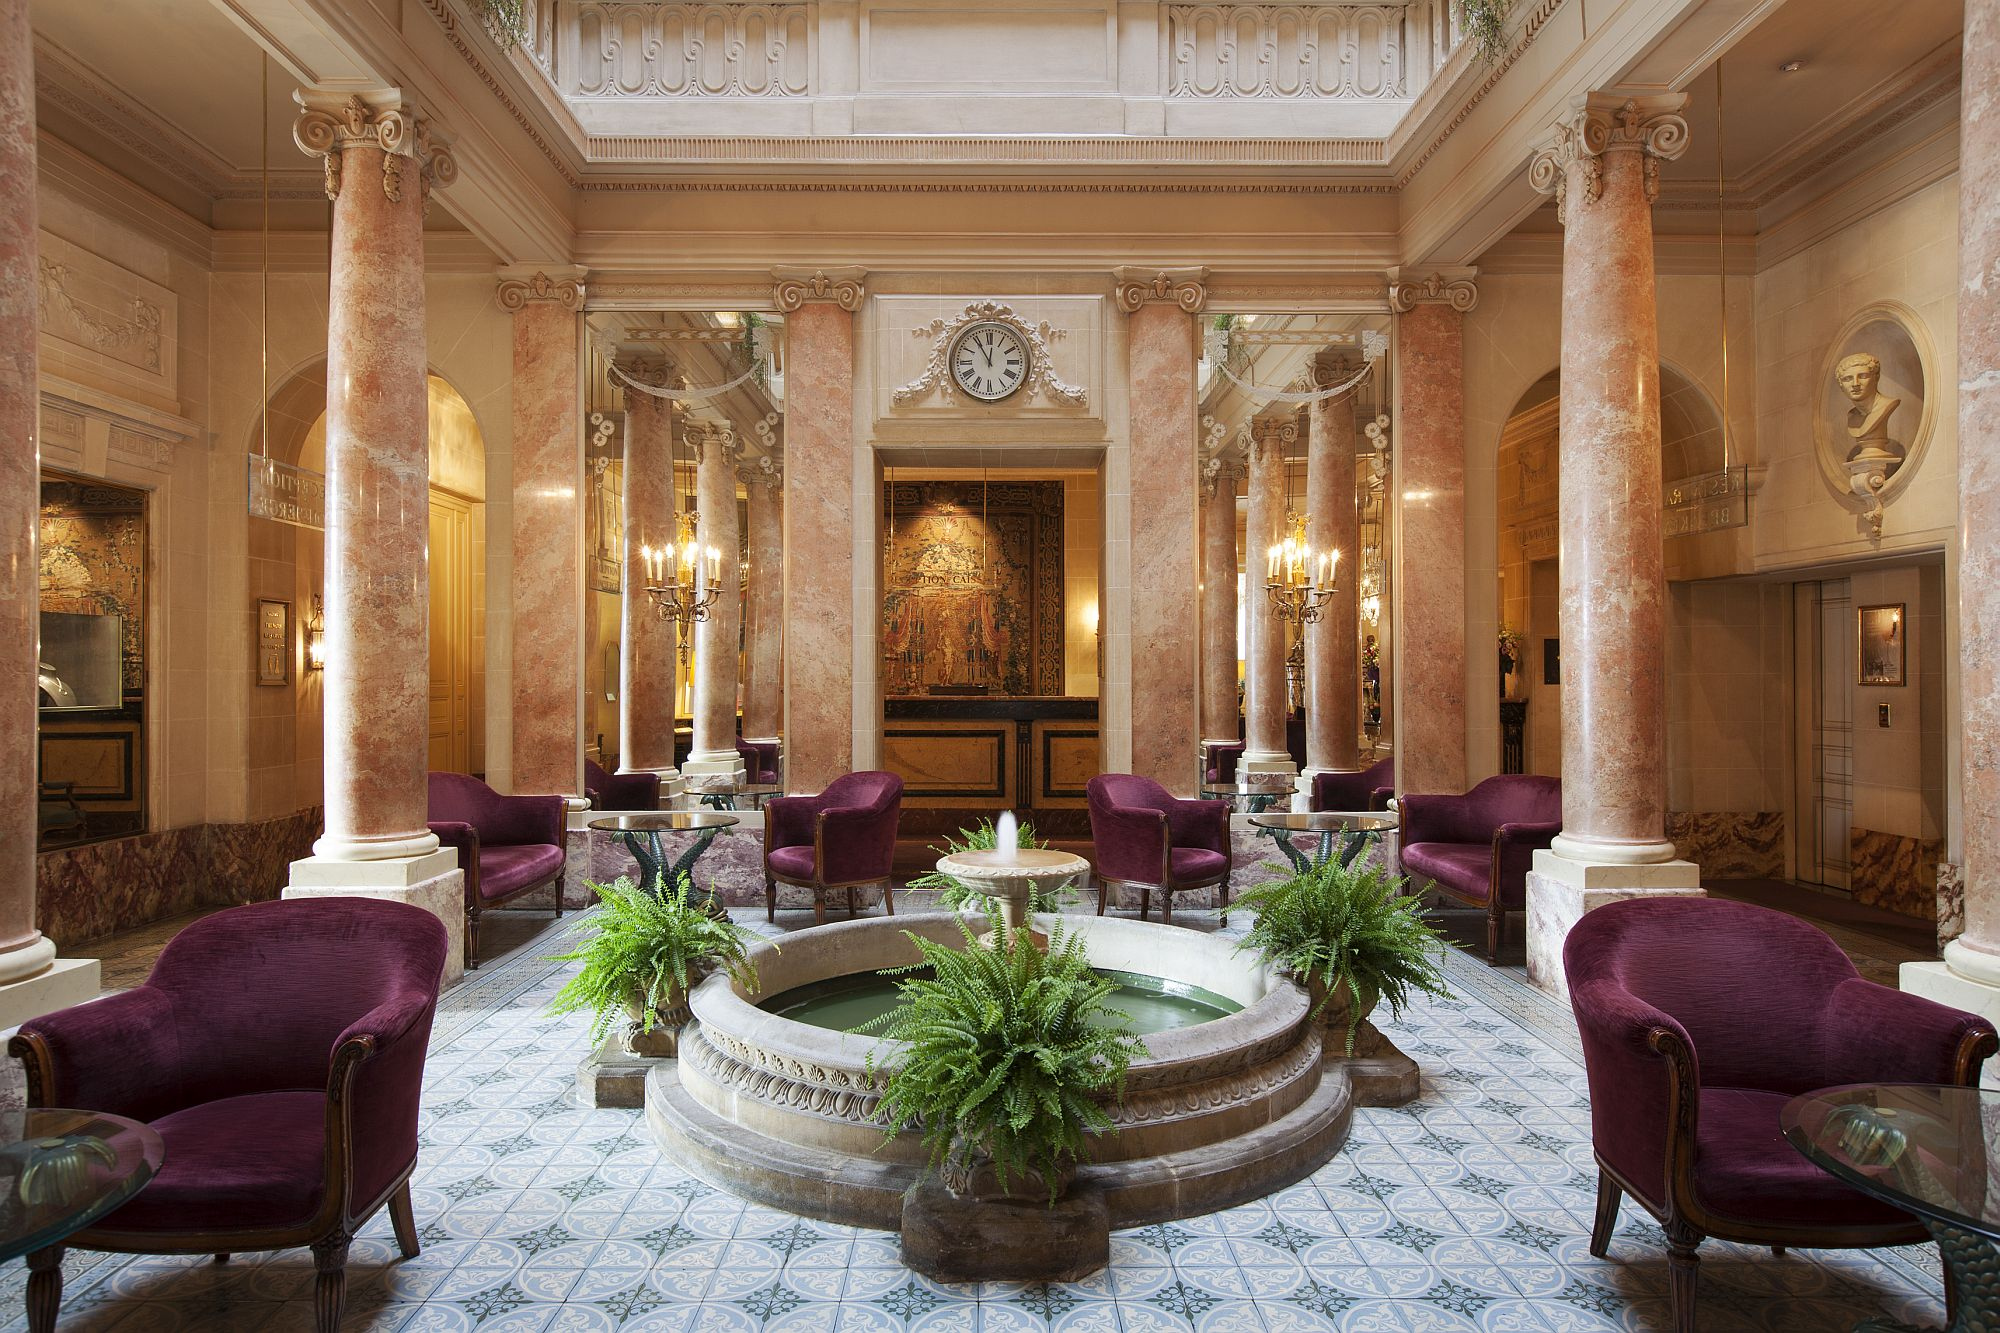 Delightful and dashing atrium at Hotel Beau Rivage